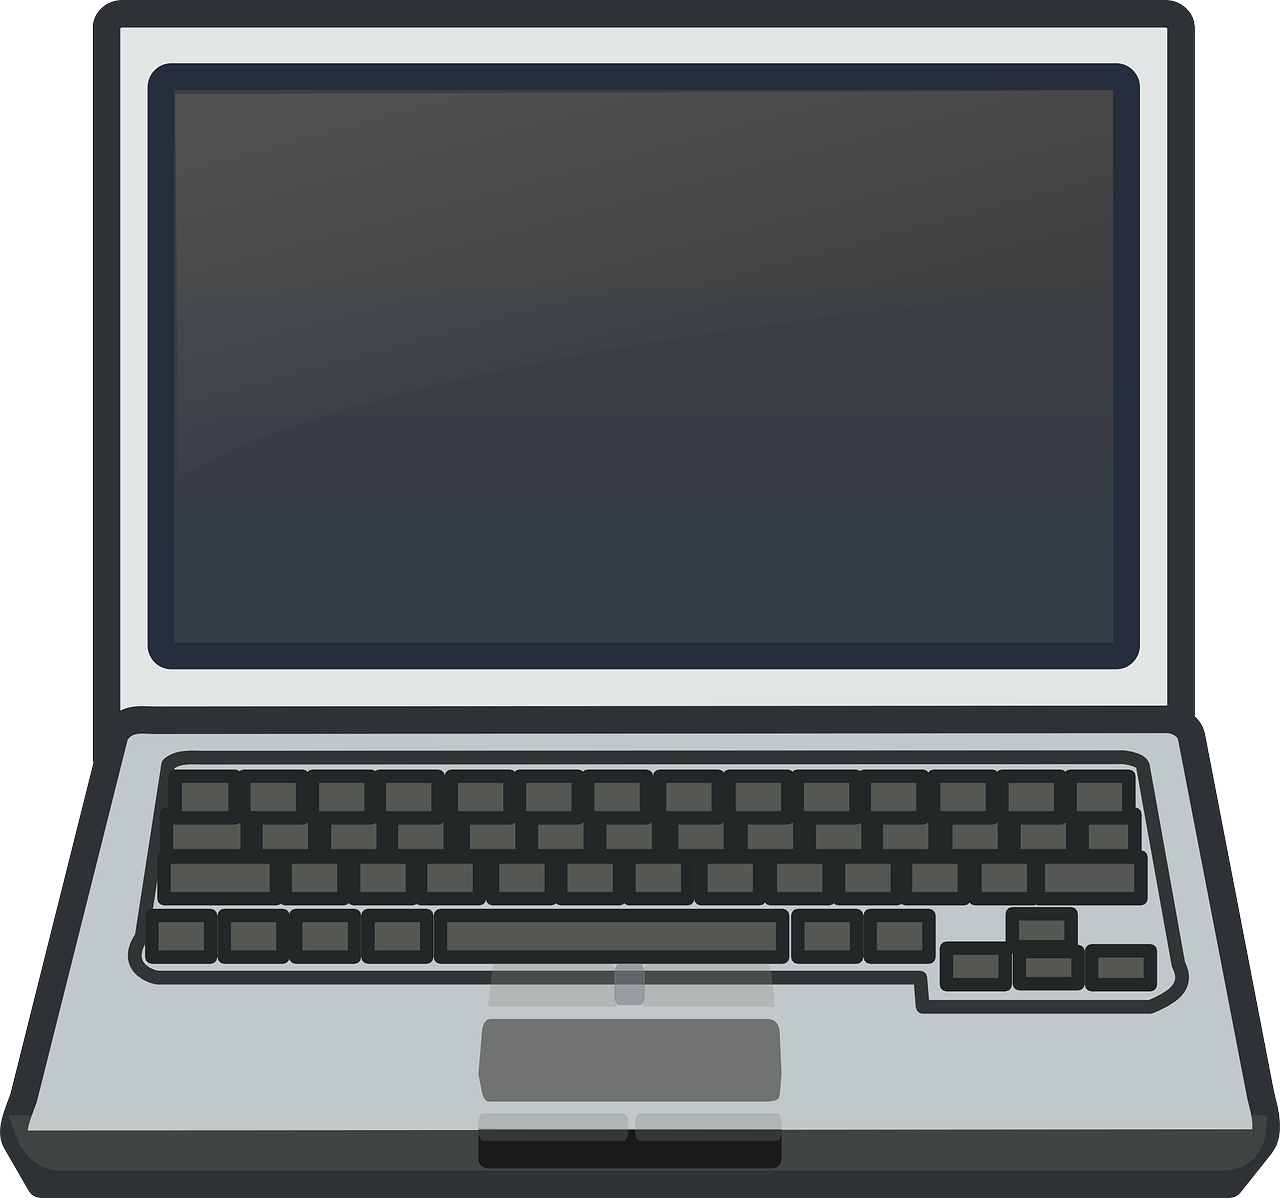 Free to Use & Public Domain Laptop Clip Art.